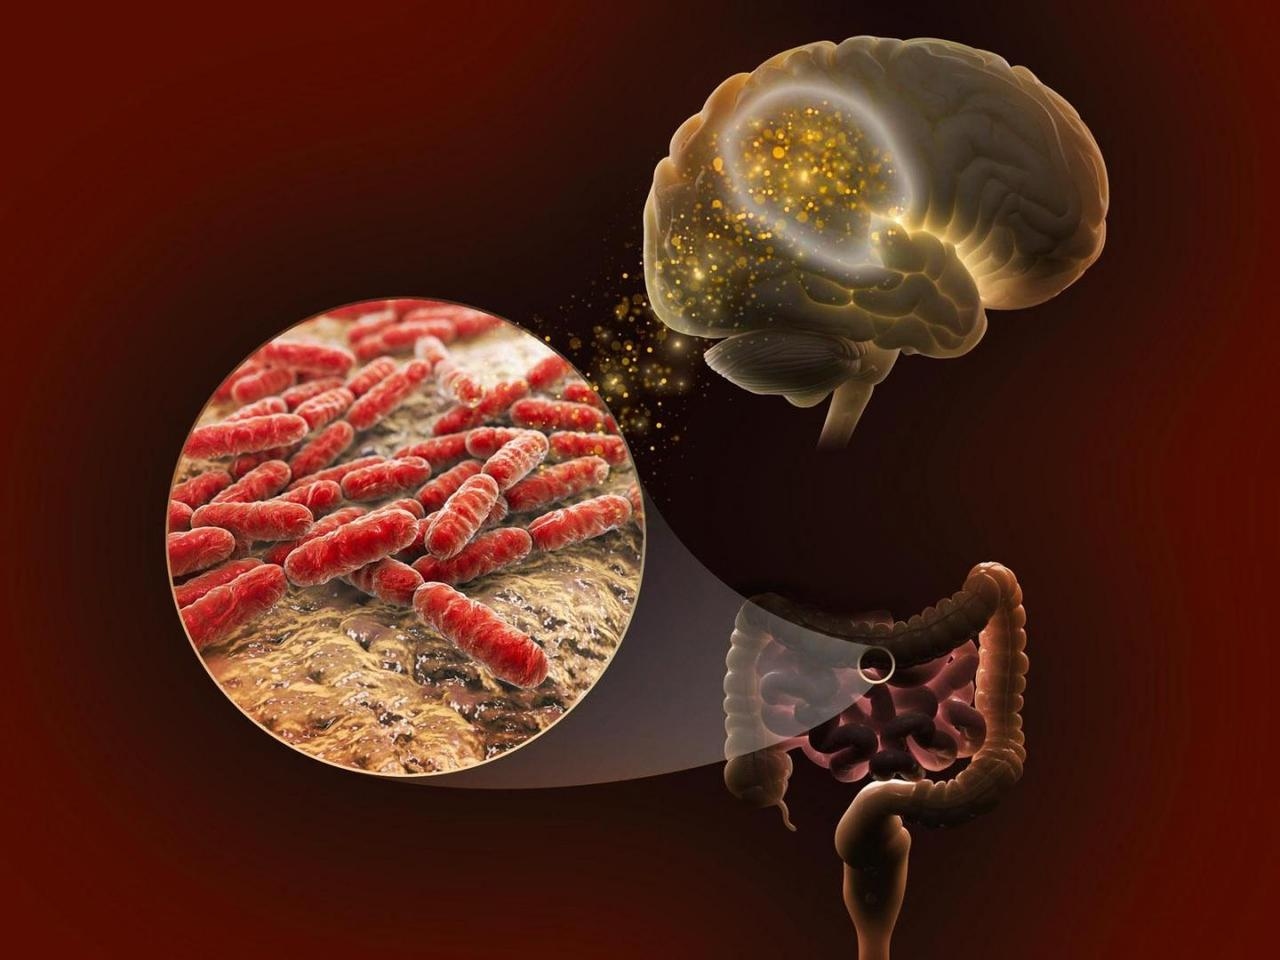 Lactate, produced by certain species of gut bacteria, may influence our memory